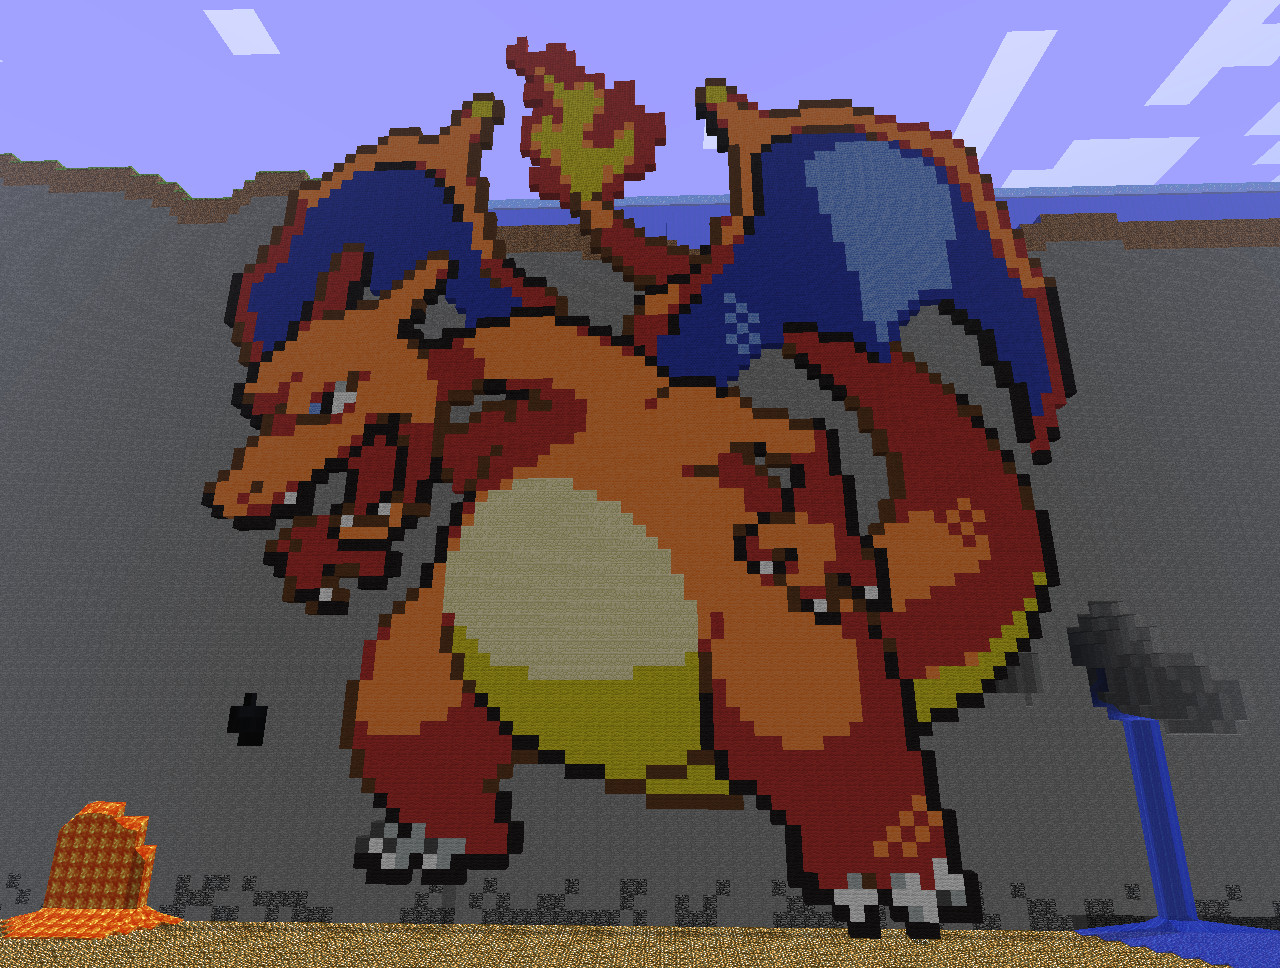 minecraft_art__charizard_by_04porteb-d390yg3.jpg